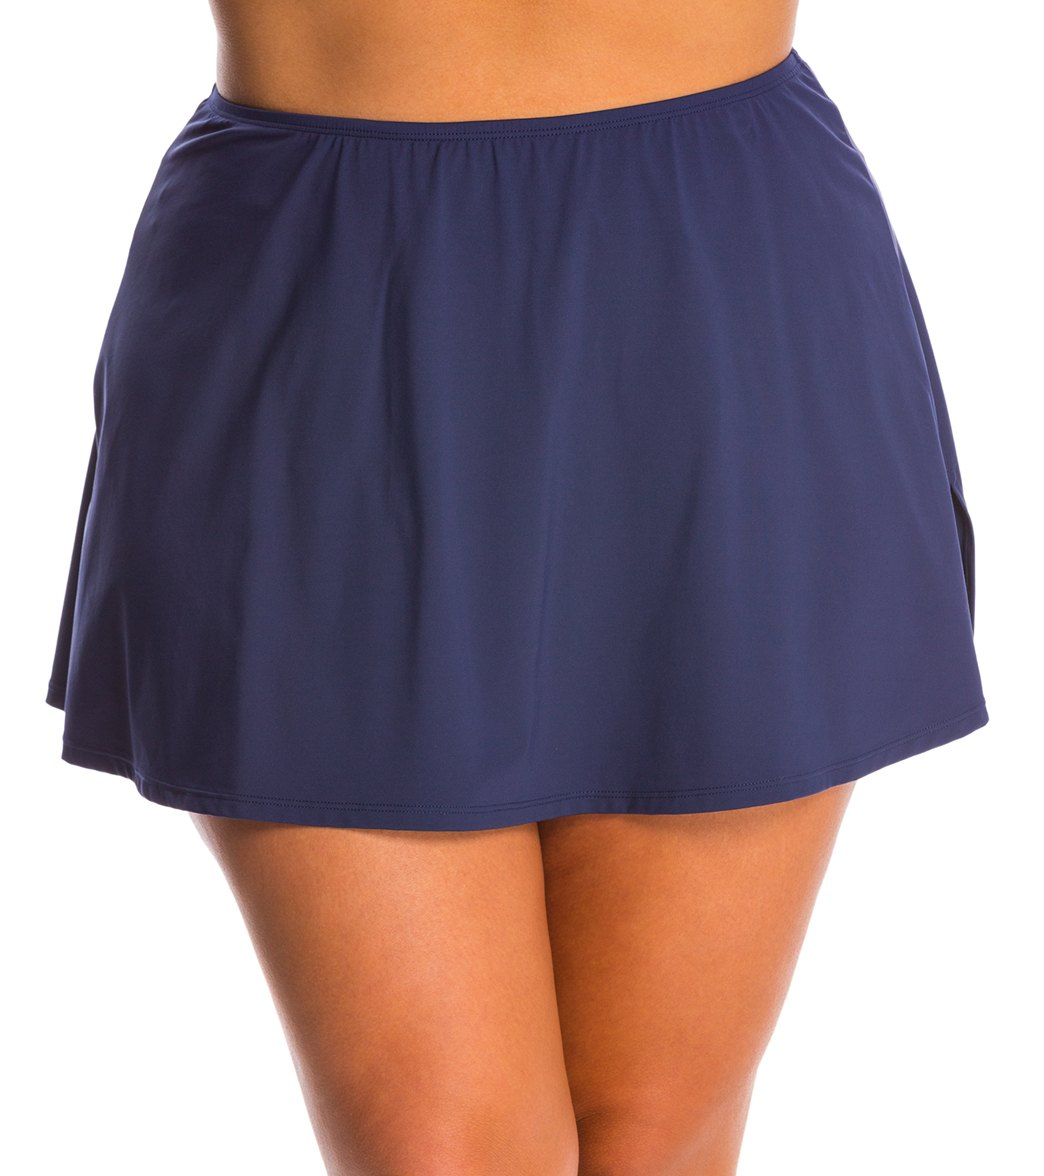 Beach House Plus Size Solid Charlotte Swim Skirt at SwimOutlet.com - Free  Shipping e766387f470c